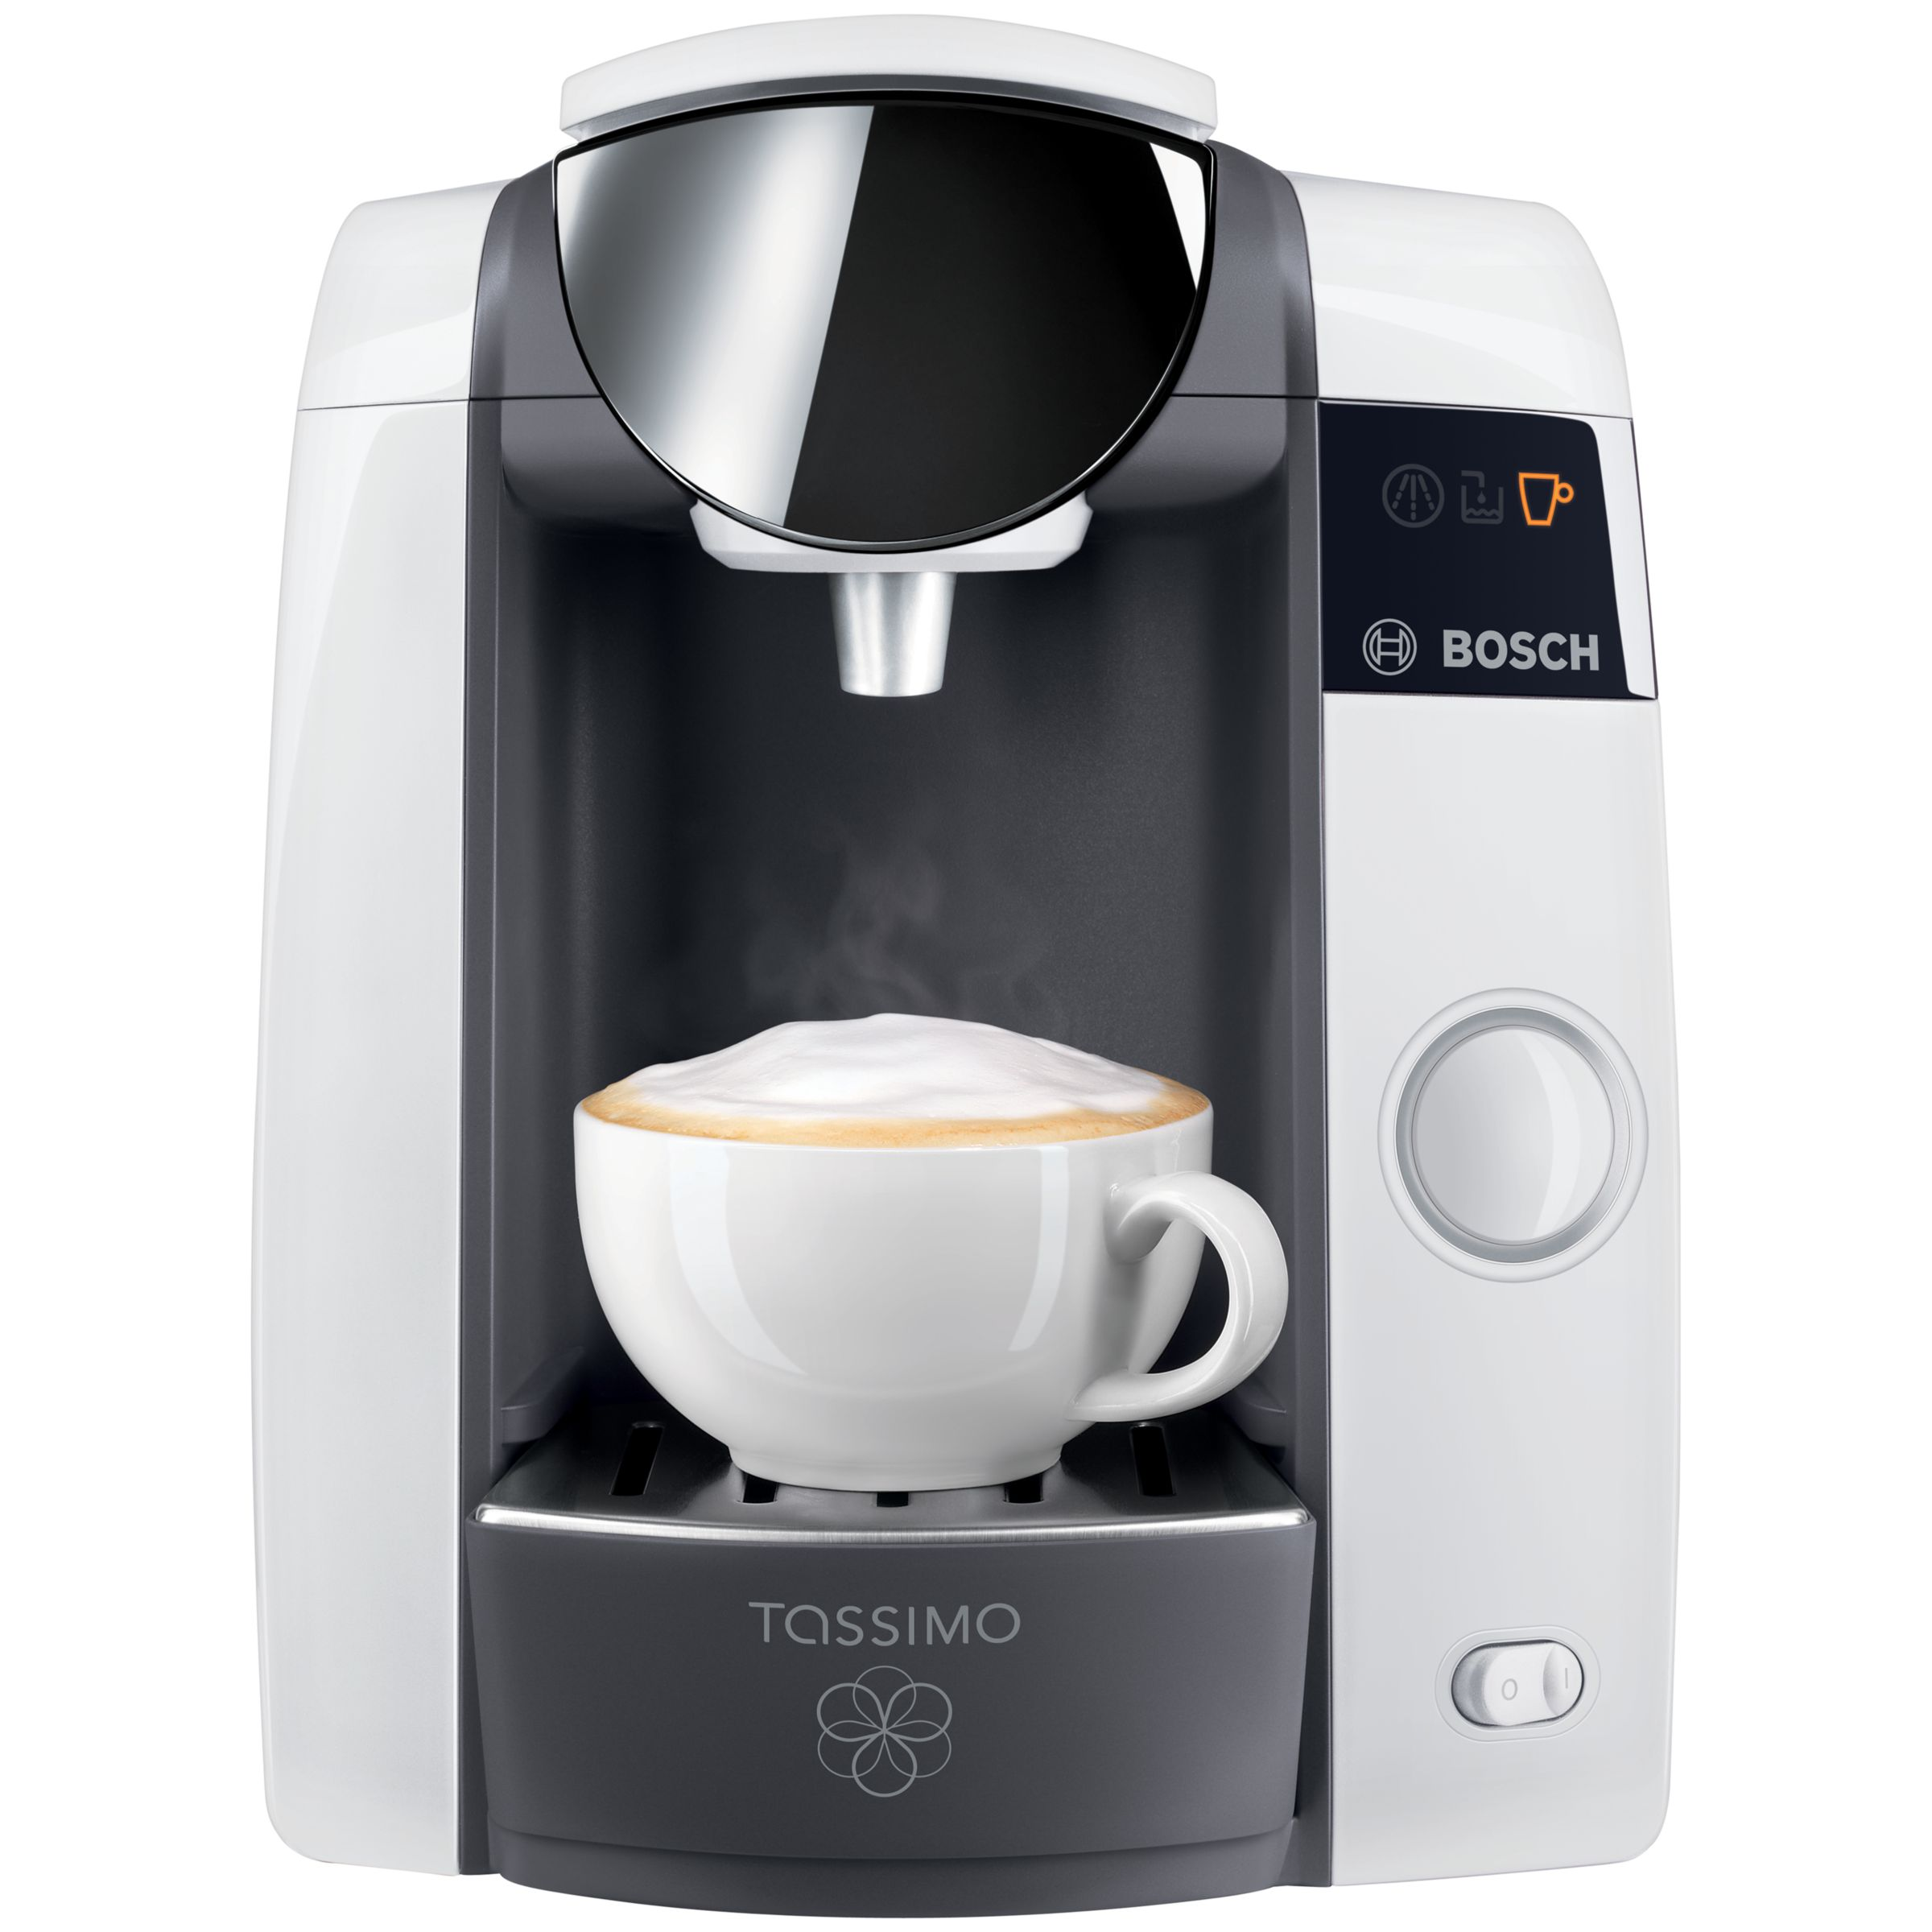 Buy Tassimo Joy Coffee Machine by Bosch, White John Lewis